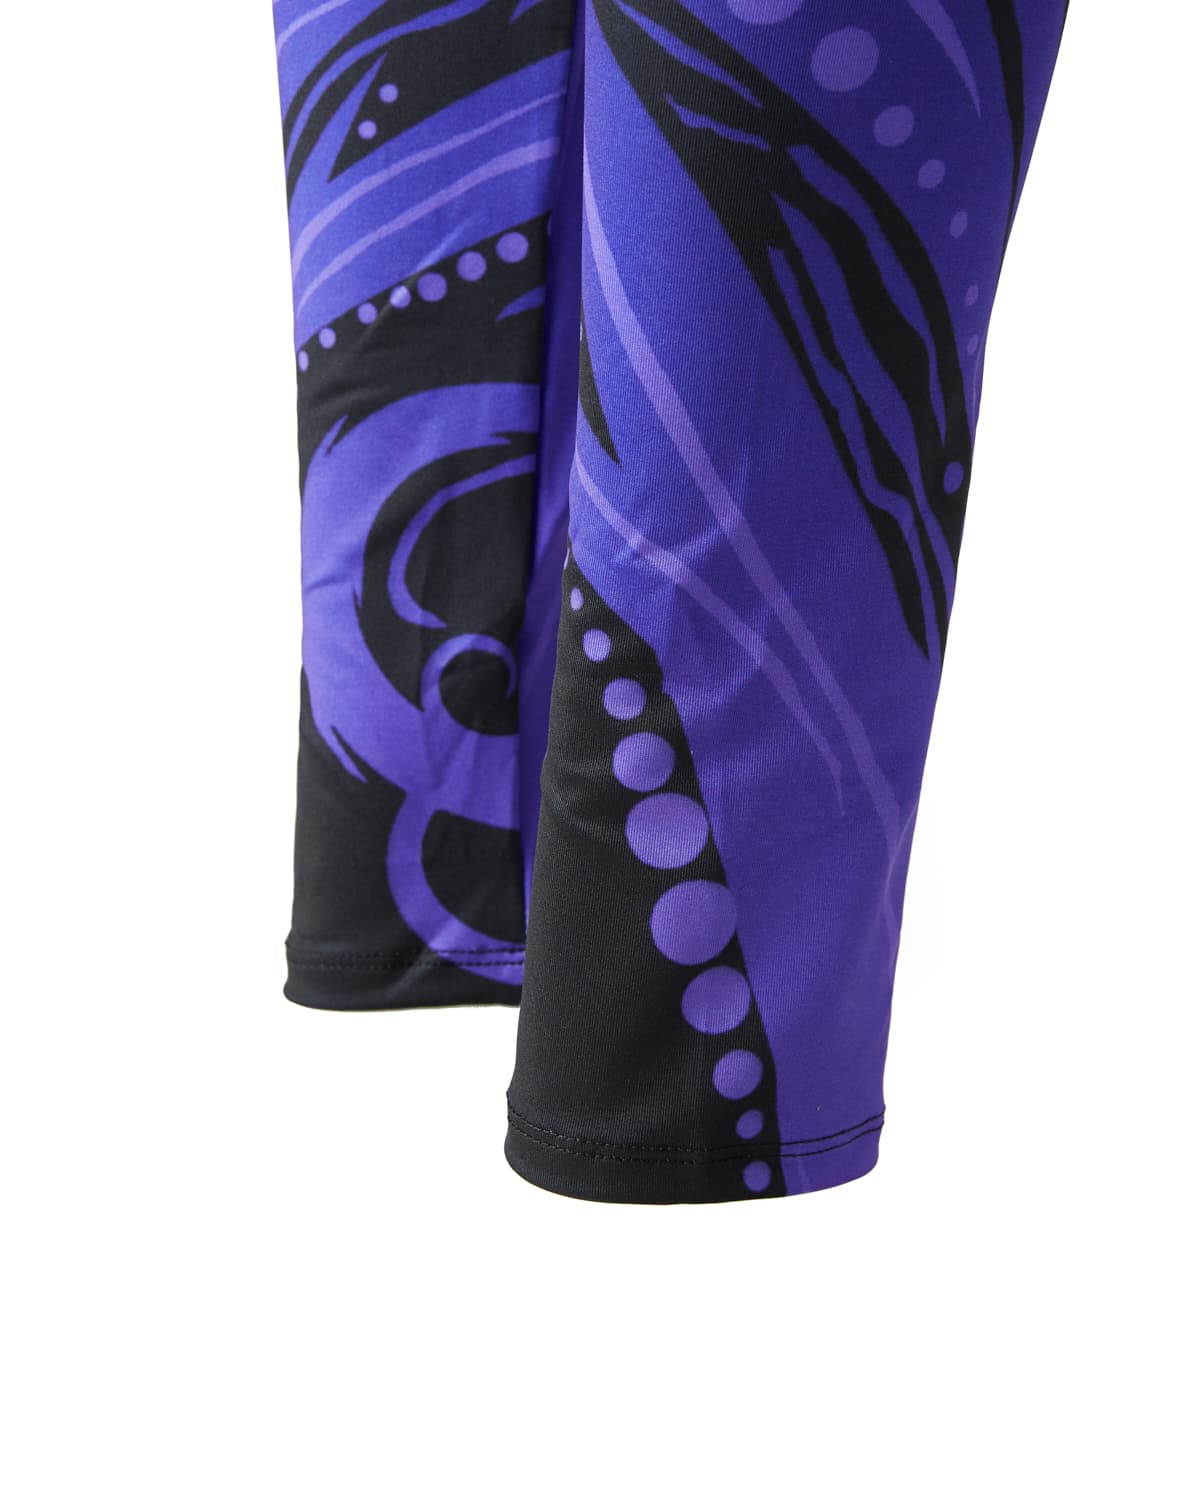 Lost Lands 'Crop Circle' Leggings (Purple)